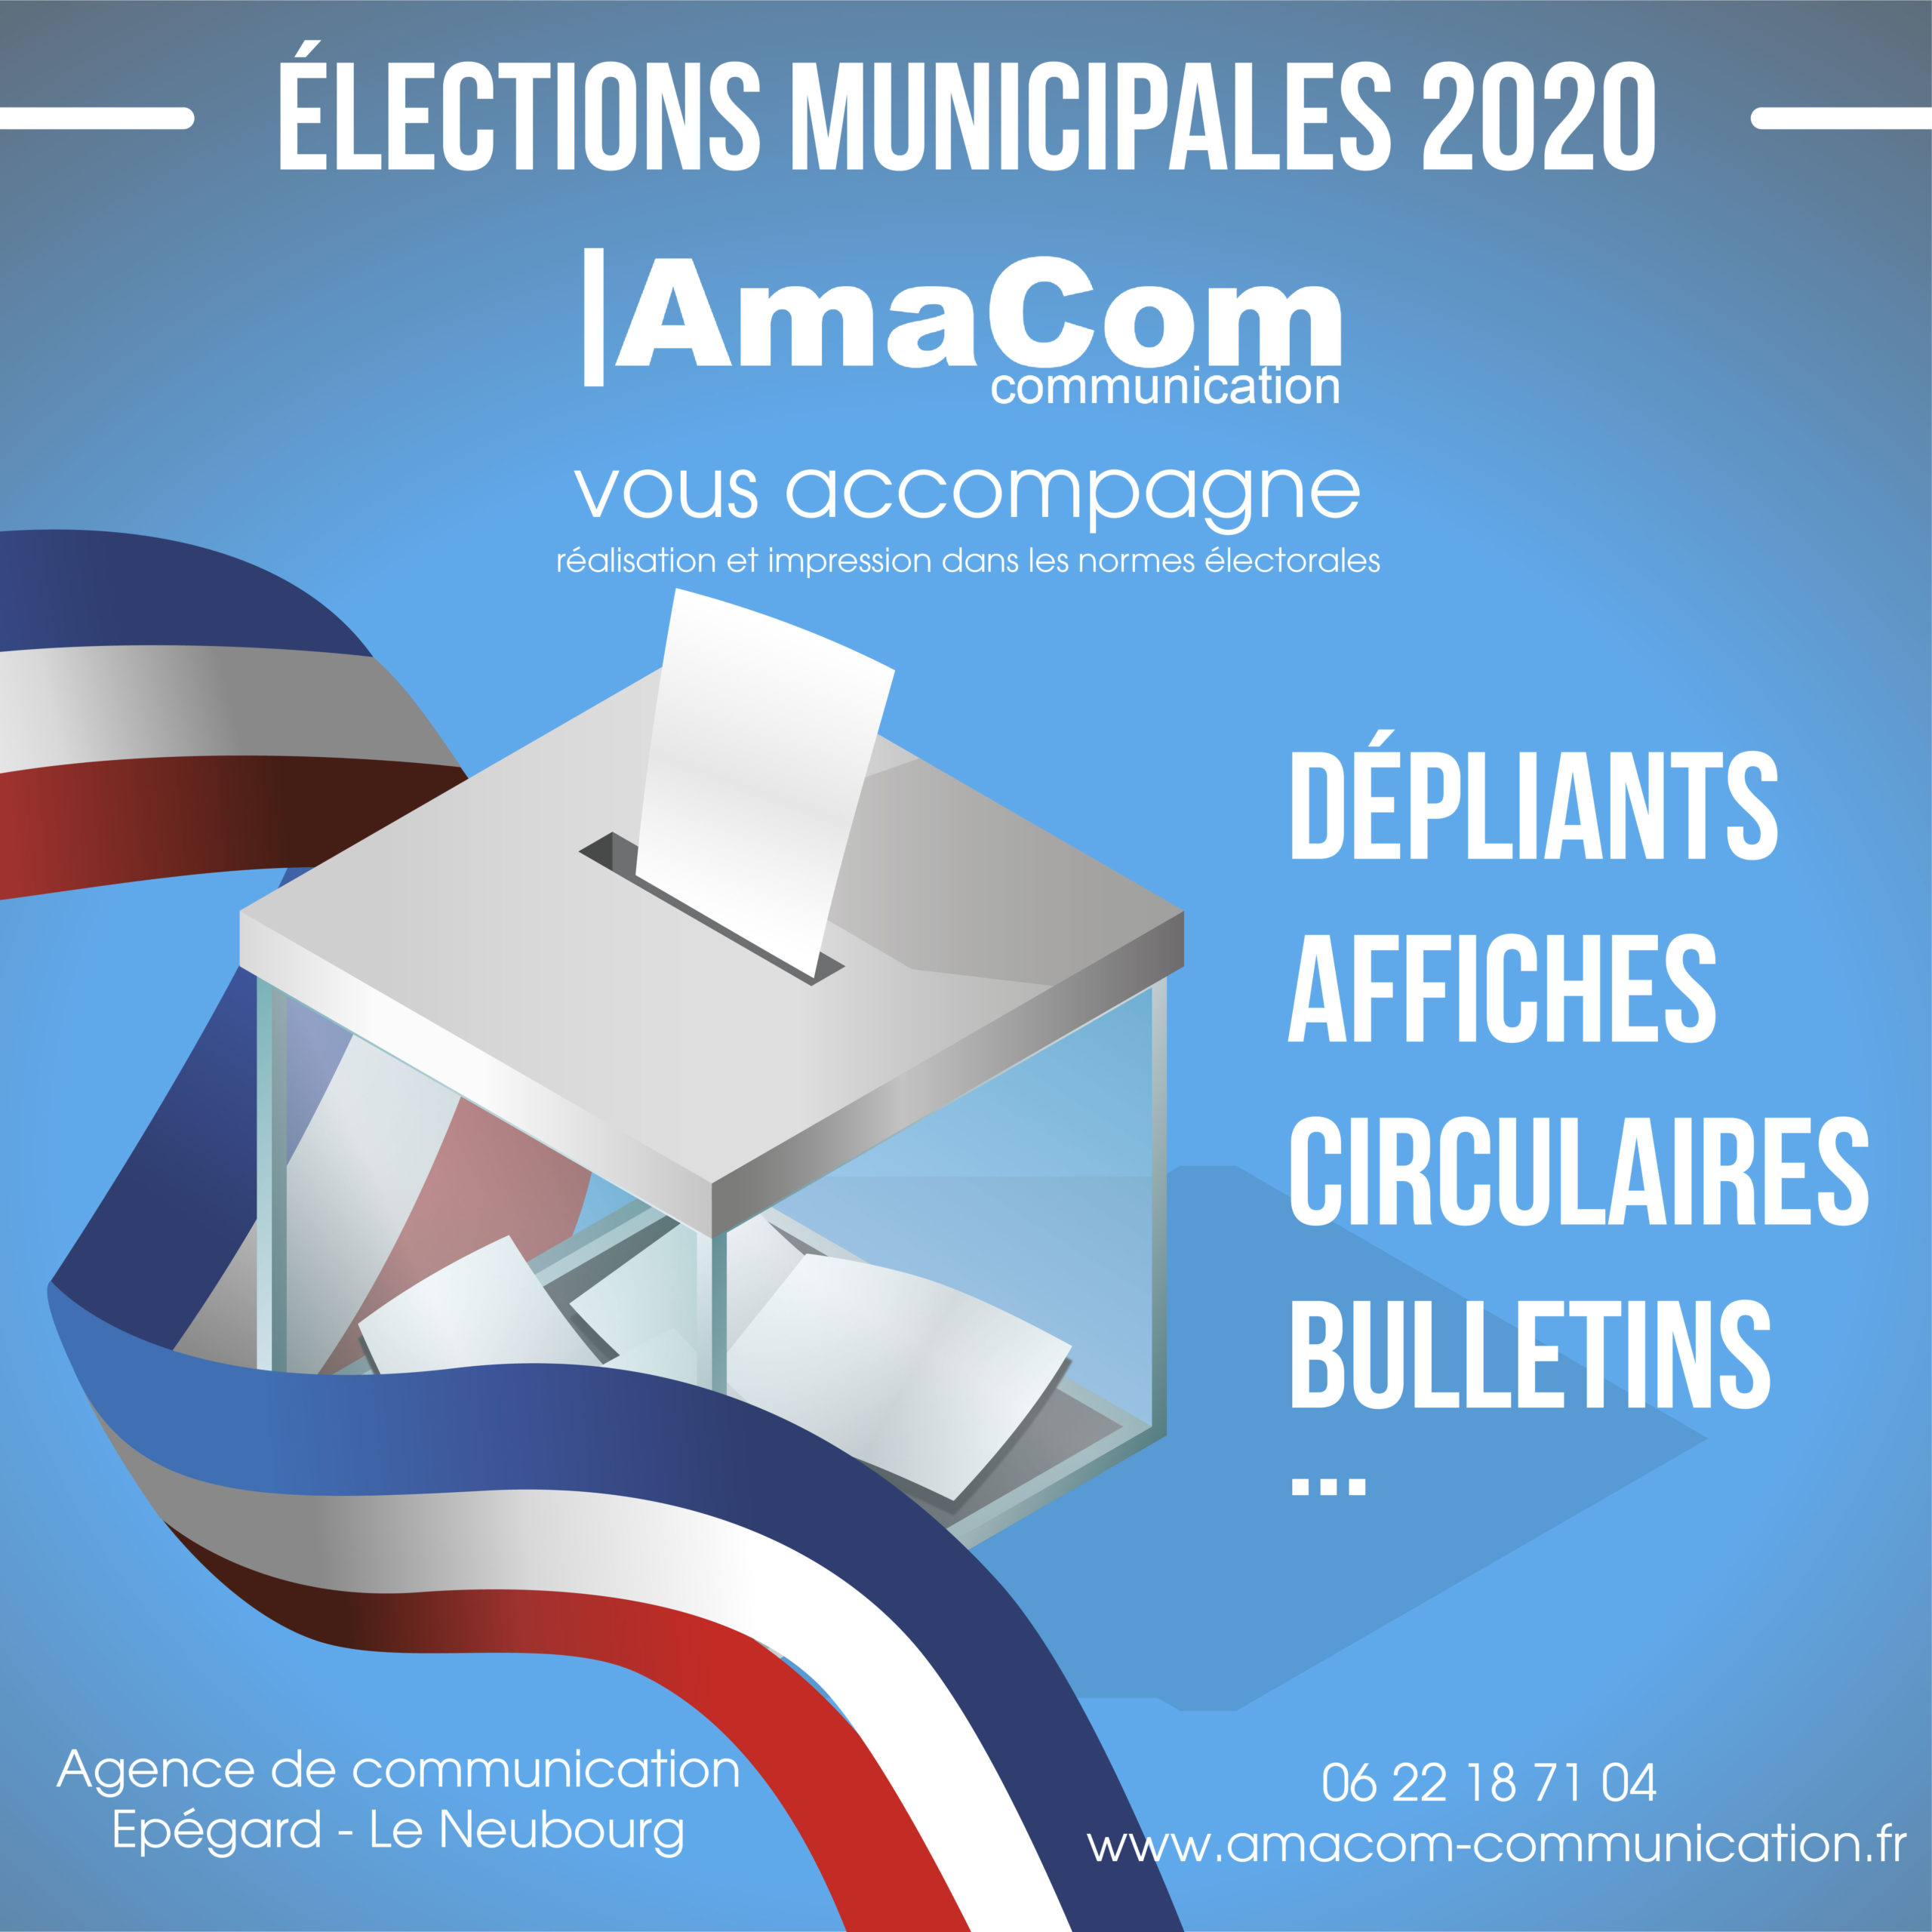 imprimerie agence communication eure normandie election municipale le neubourg